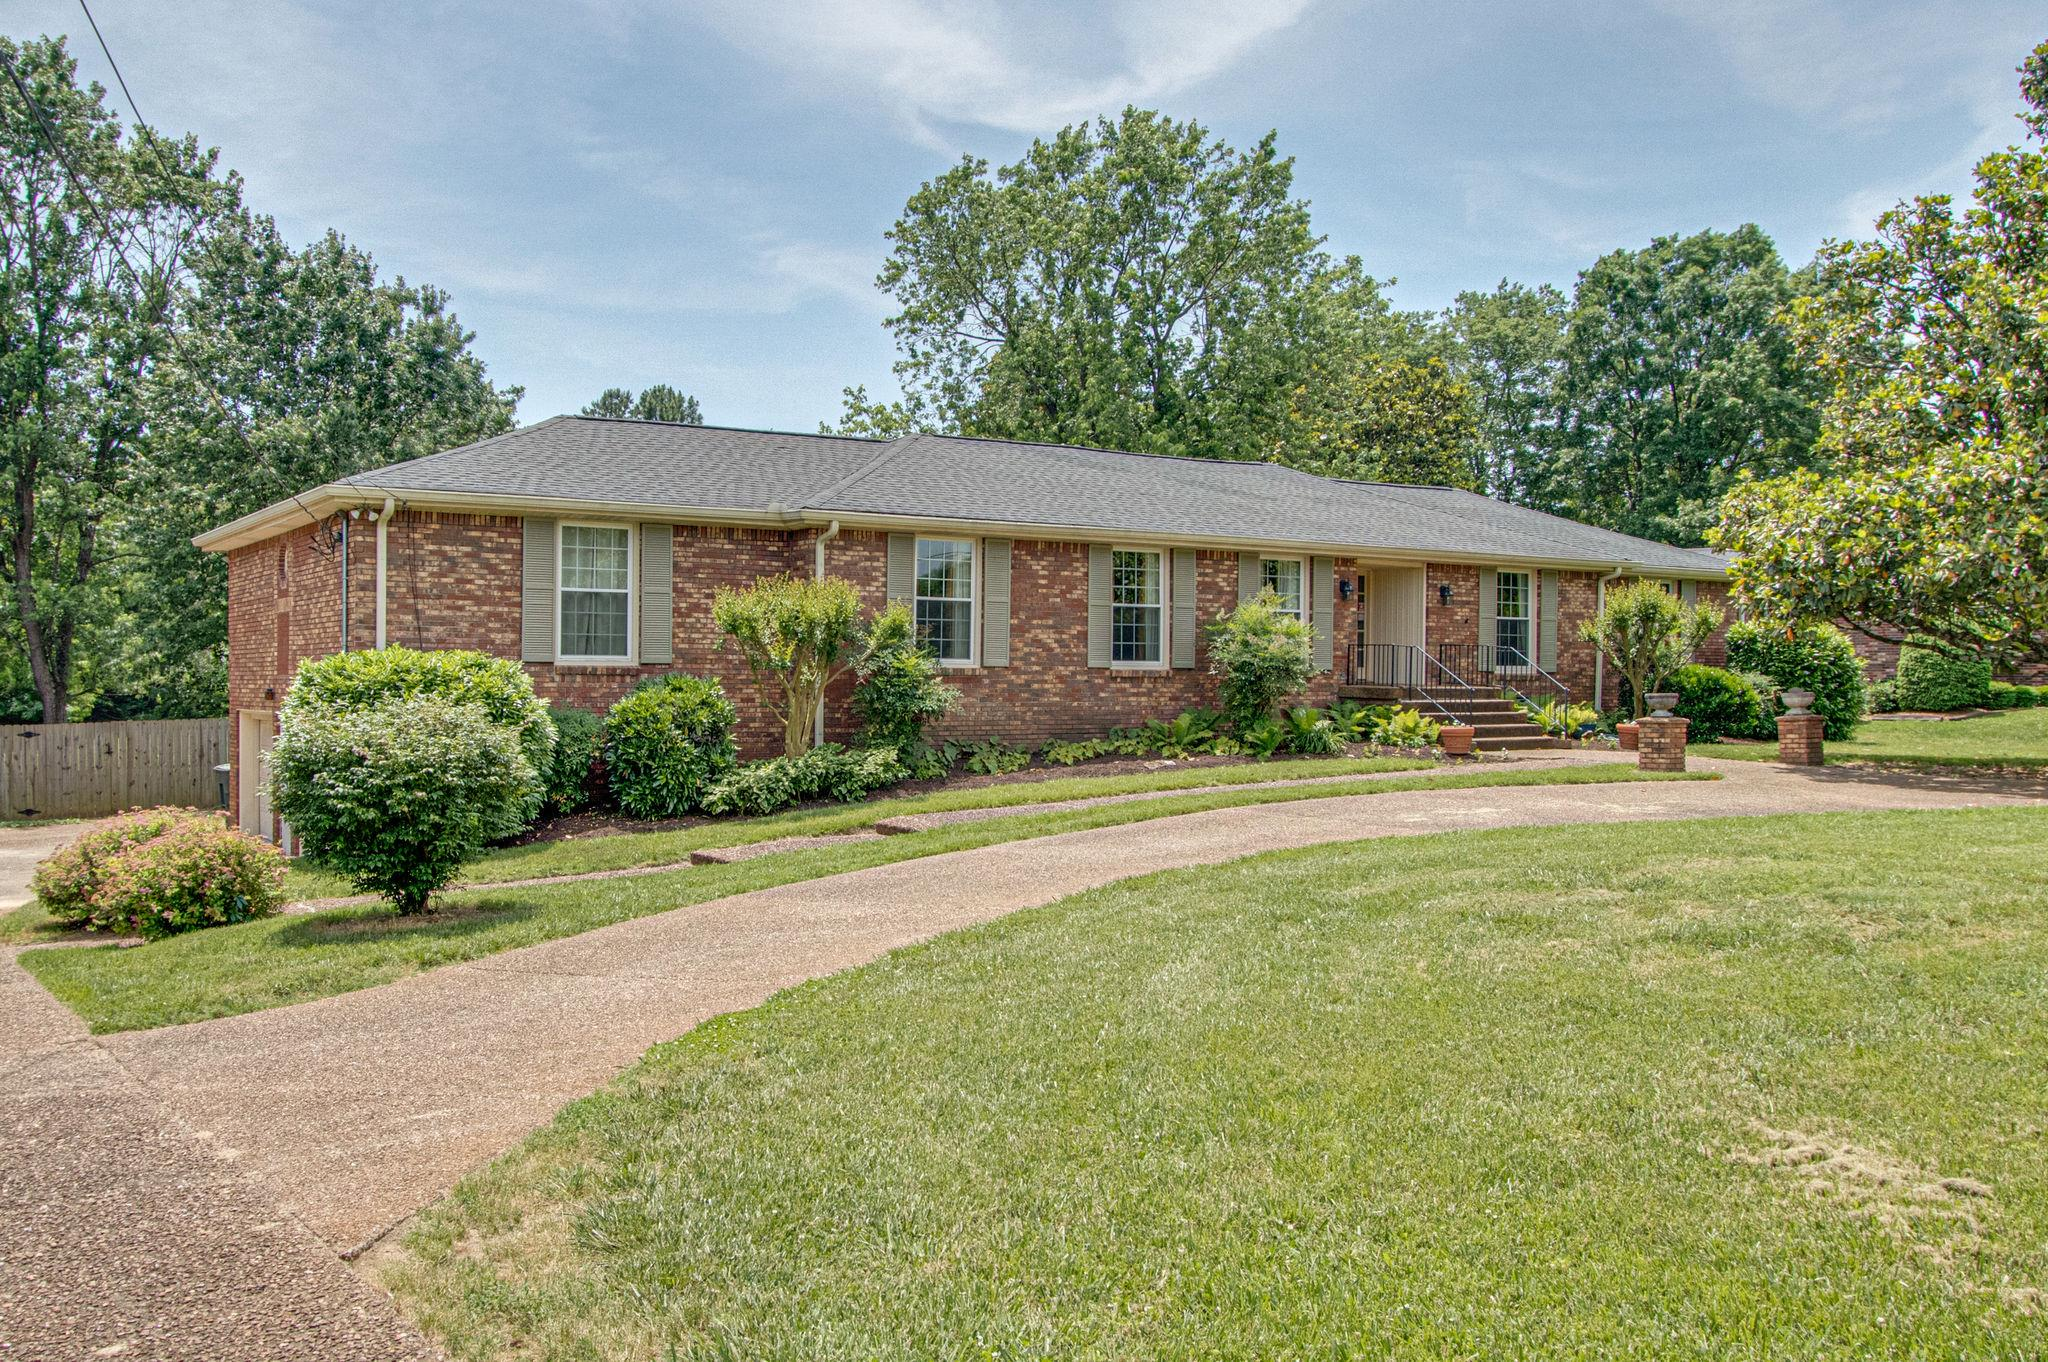 218 Montchanin Dr, Old Hickory, TN 37138 - Old Hickory, TN real estate listing